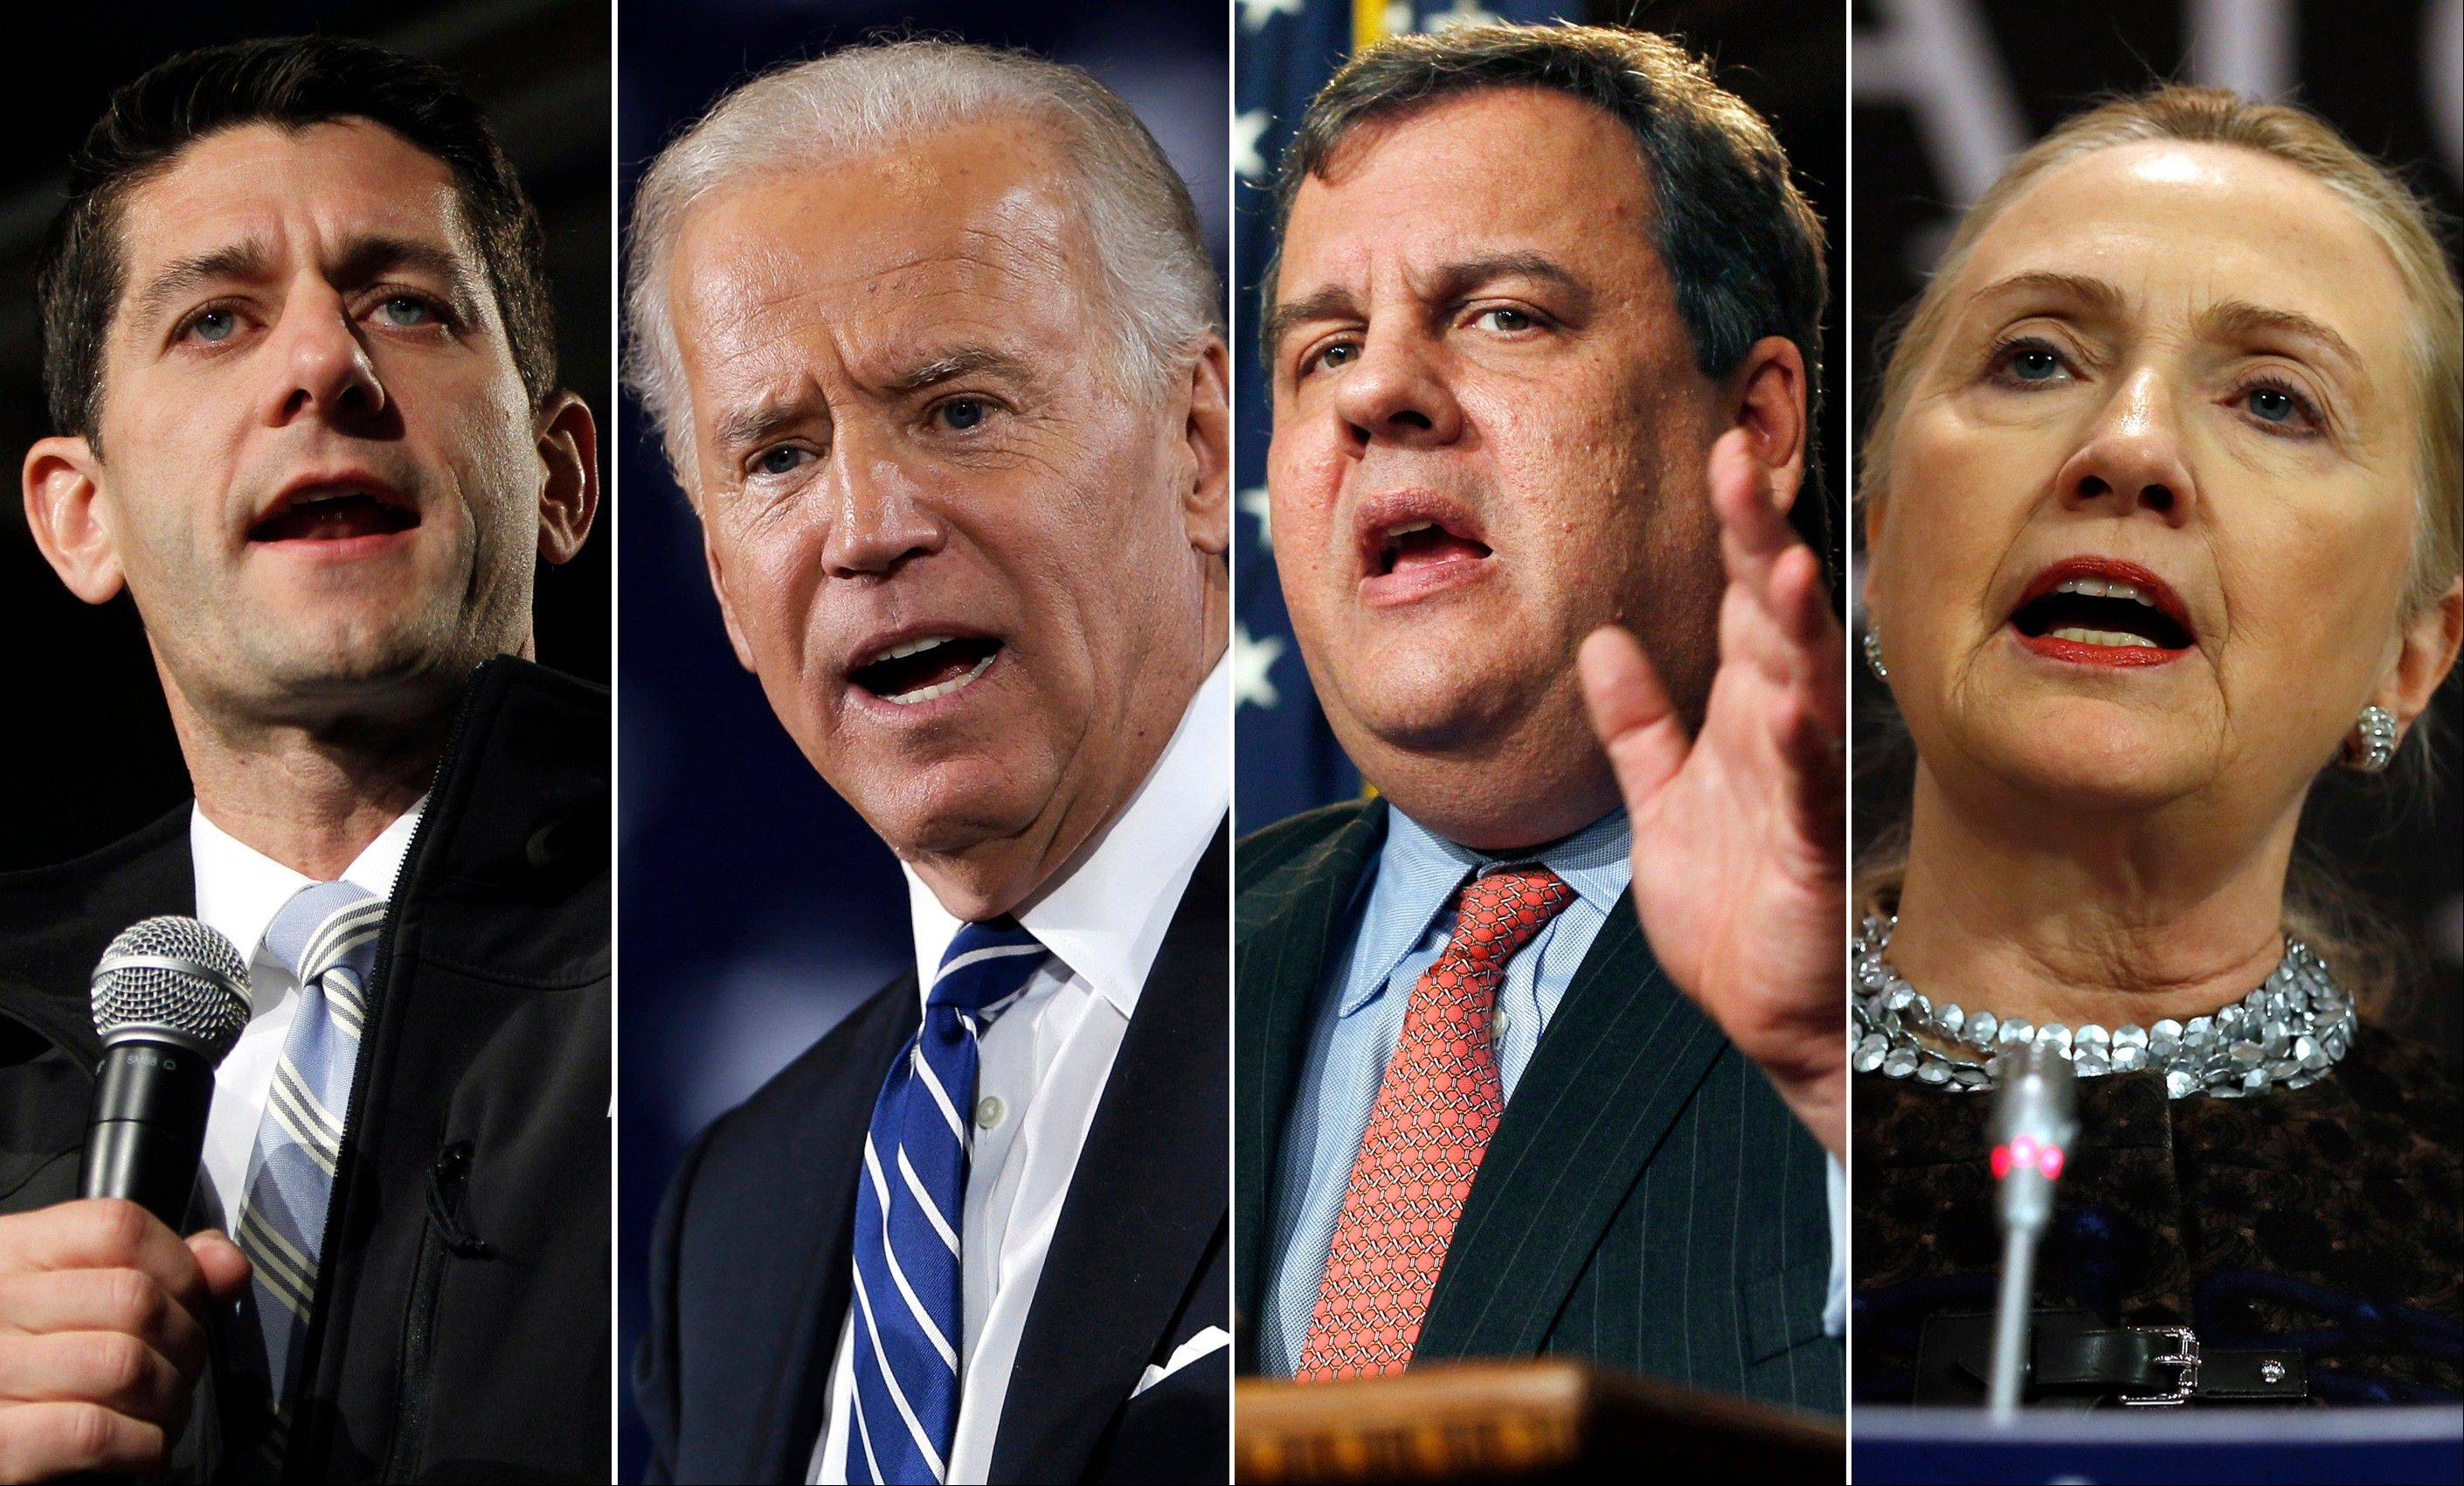 From left, Rep. Paul Ryan, a Wisconsin Republican, Vice President Joe Biden, New Jersey Gov. Chris Christie, and Secretary of State Hillary Rodham Clinton. While the next presidential primary voting is still three years away, the political implications of the actions and whereabouts of the potential field of 2016 candidates hung over a dramatic year-end period.